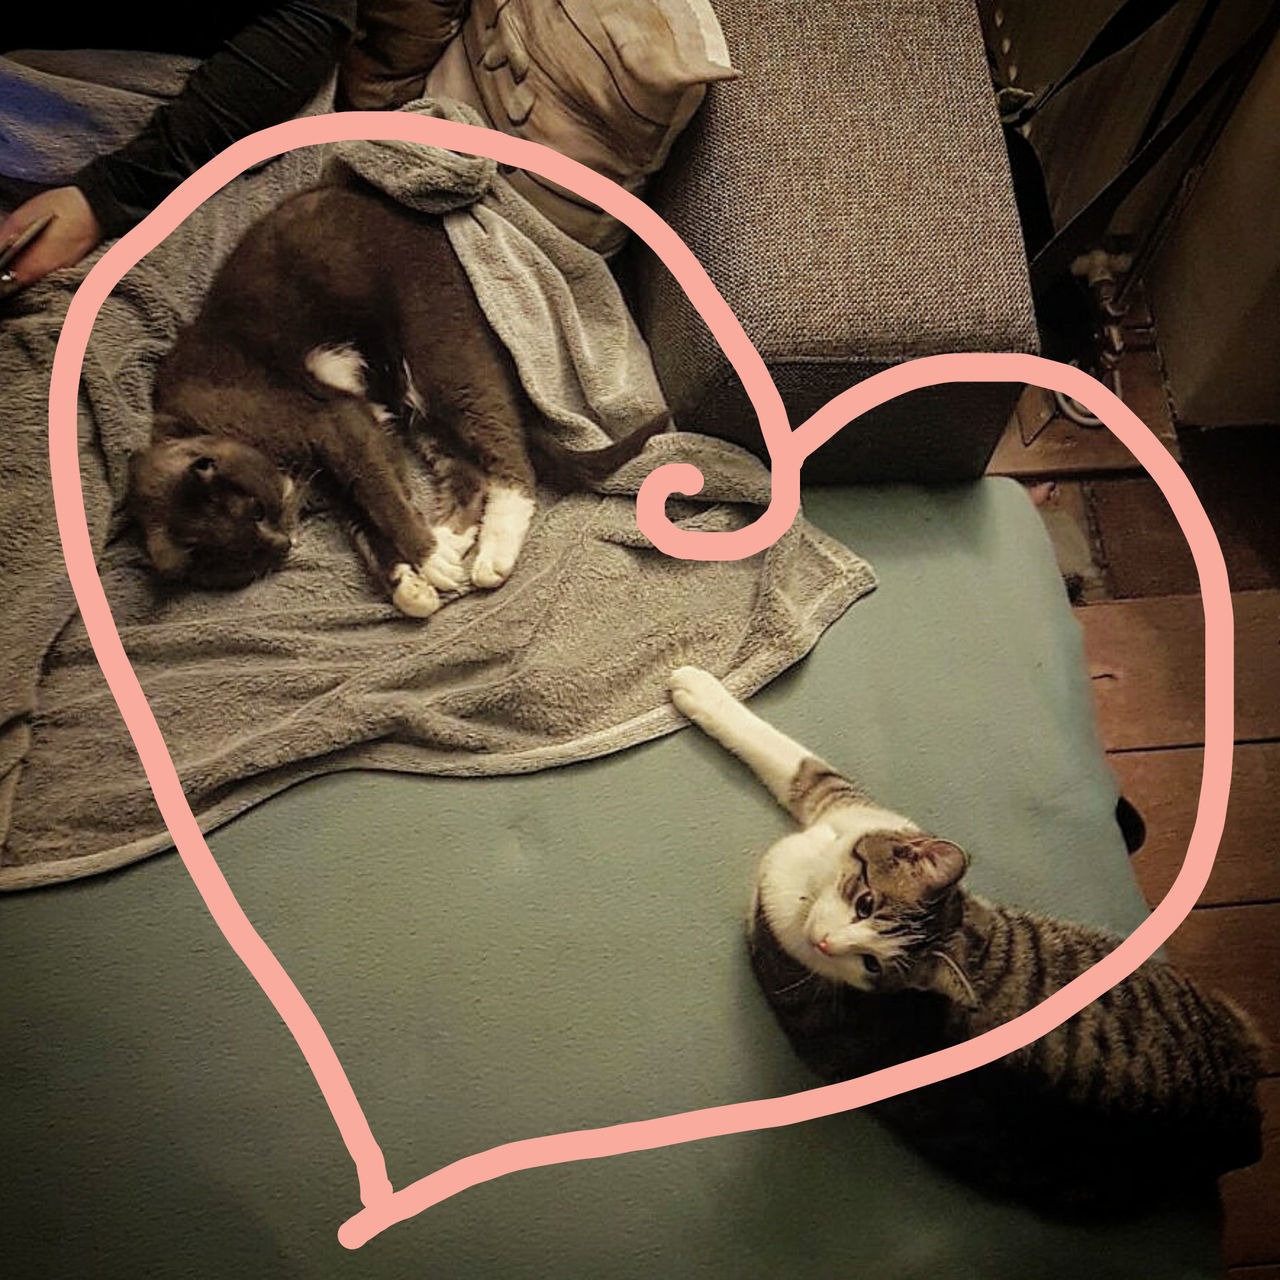 pets, domestic cat, domestic animals, mammal, animal themes, one animal, feline, cat, eyes closed, dog, indoors, relaxation, whisker, cable, lying down, sitting, no people, technology, day, animal hospital